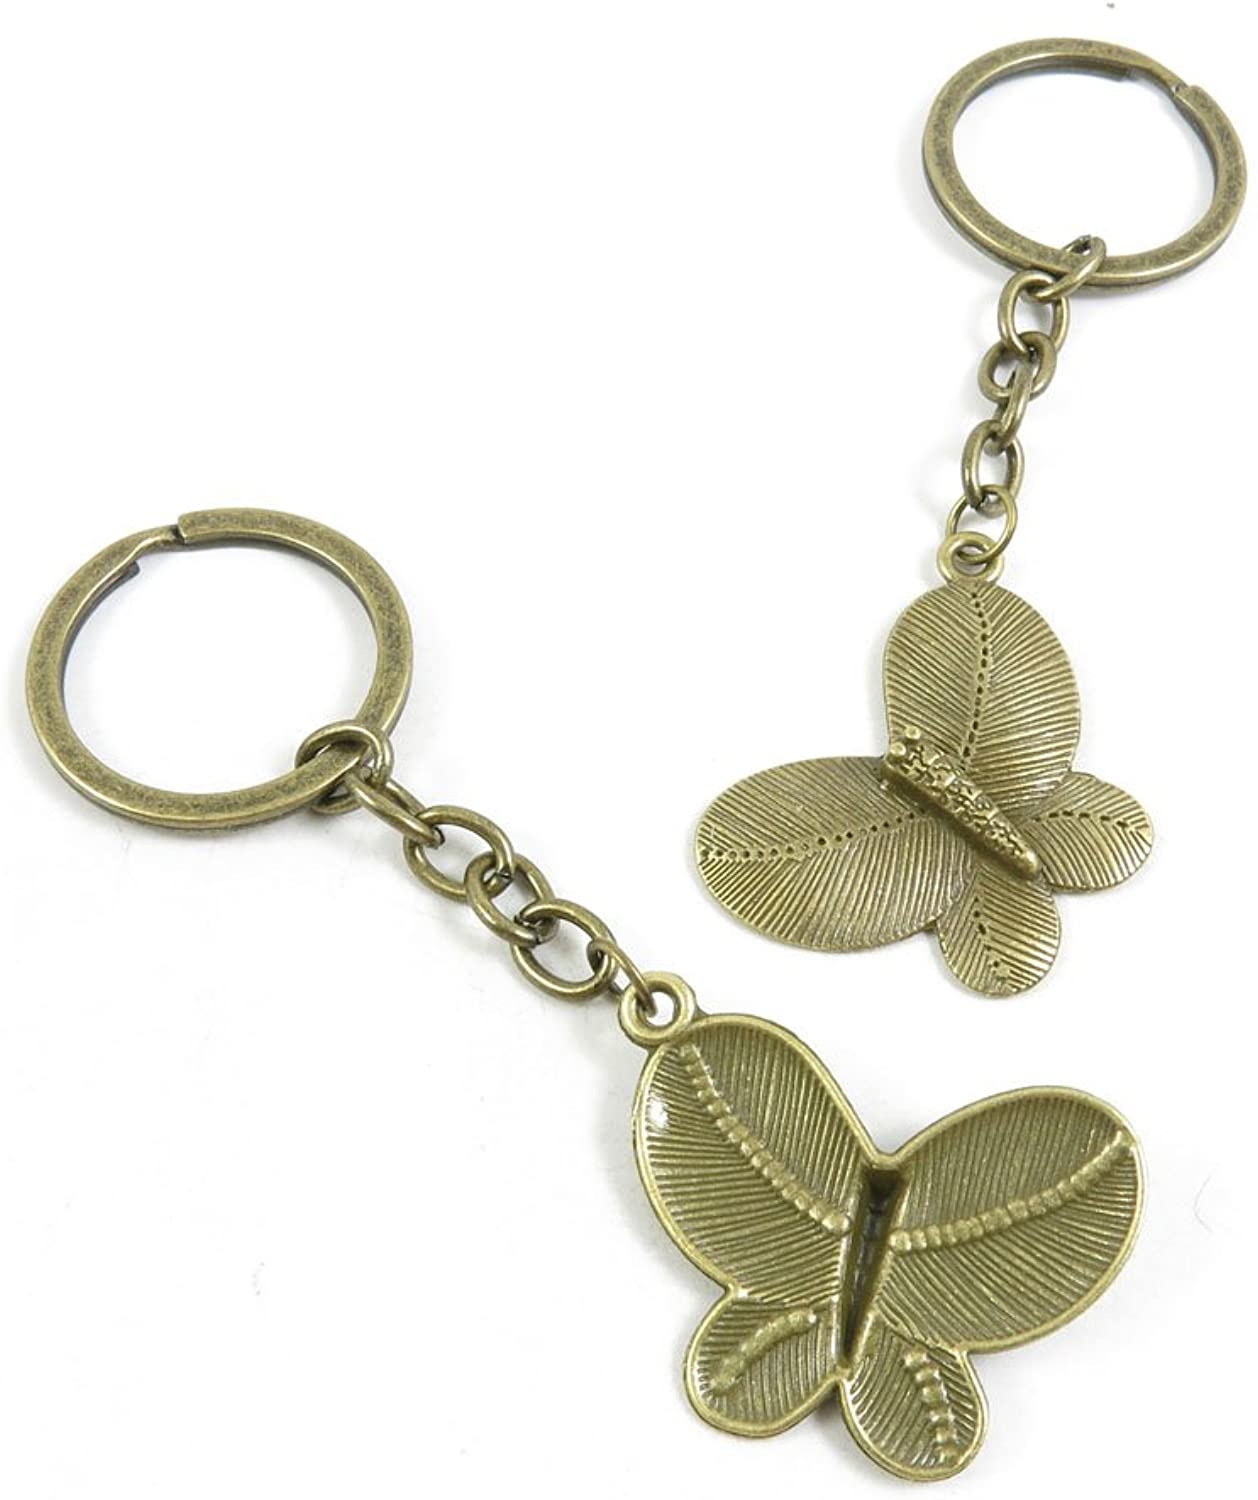 140 Pieces Fashion Jewelry Keyring Keychain Door Car Key Tag Ring Chain Supplier Supply Wholesale Bulk Lots S8HI5 Butterfly